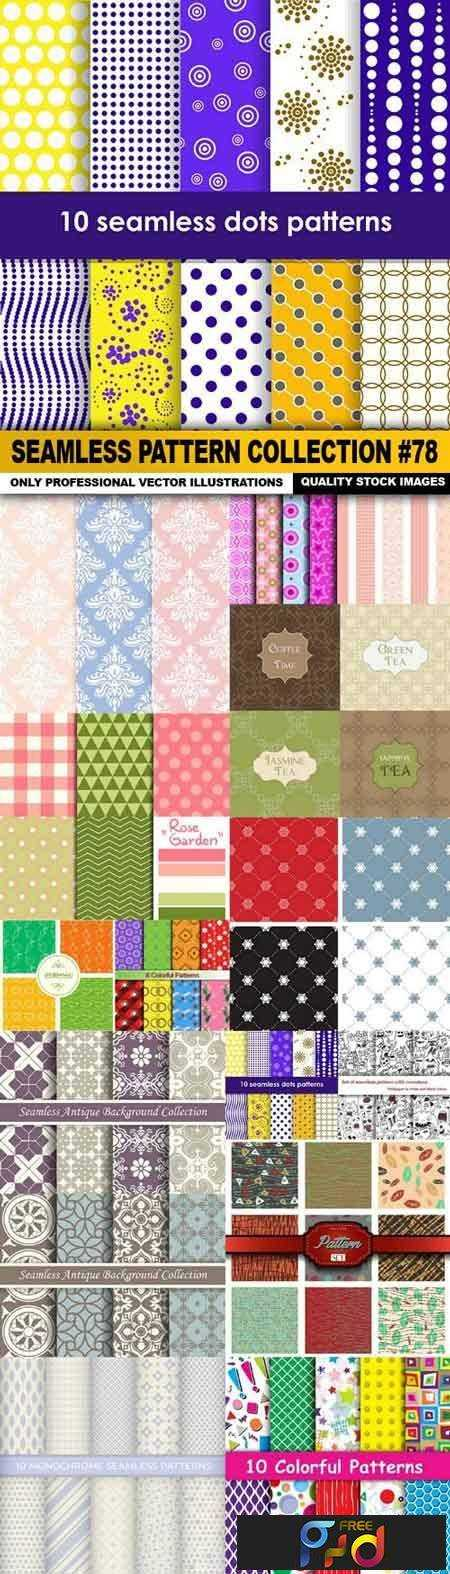 FreePsdVn.com_VECTOR_1701359_seamless_pattern_collection_78_15_vector